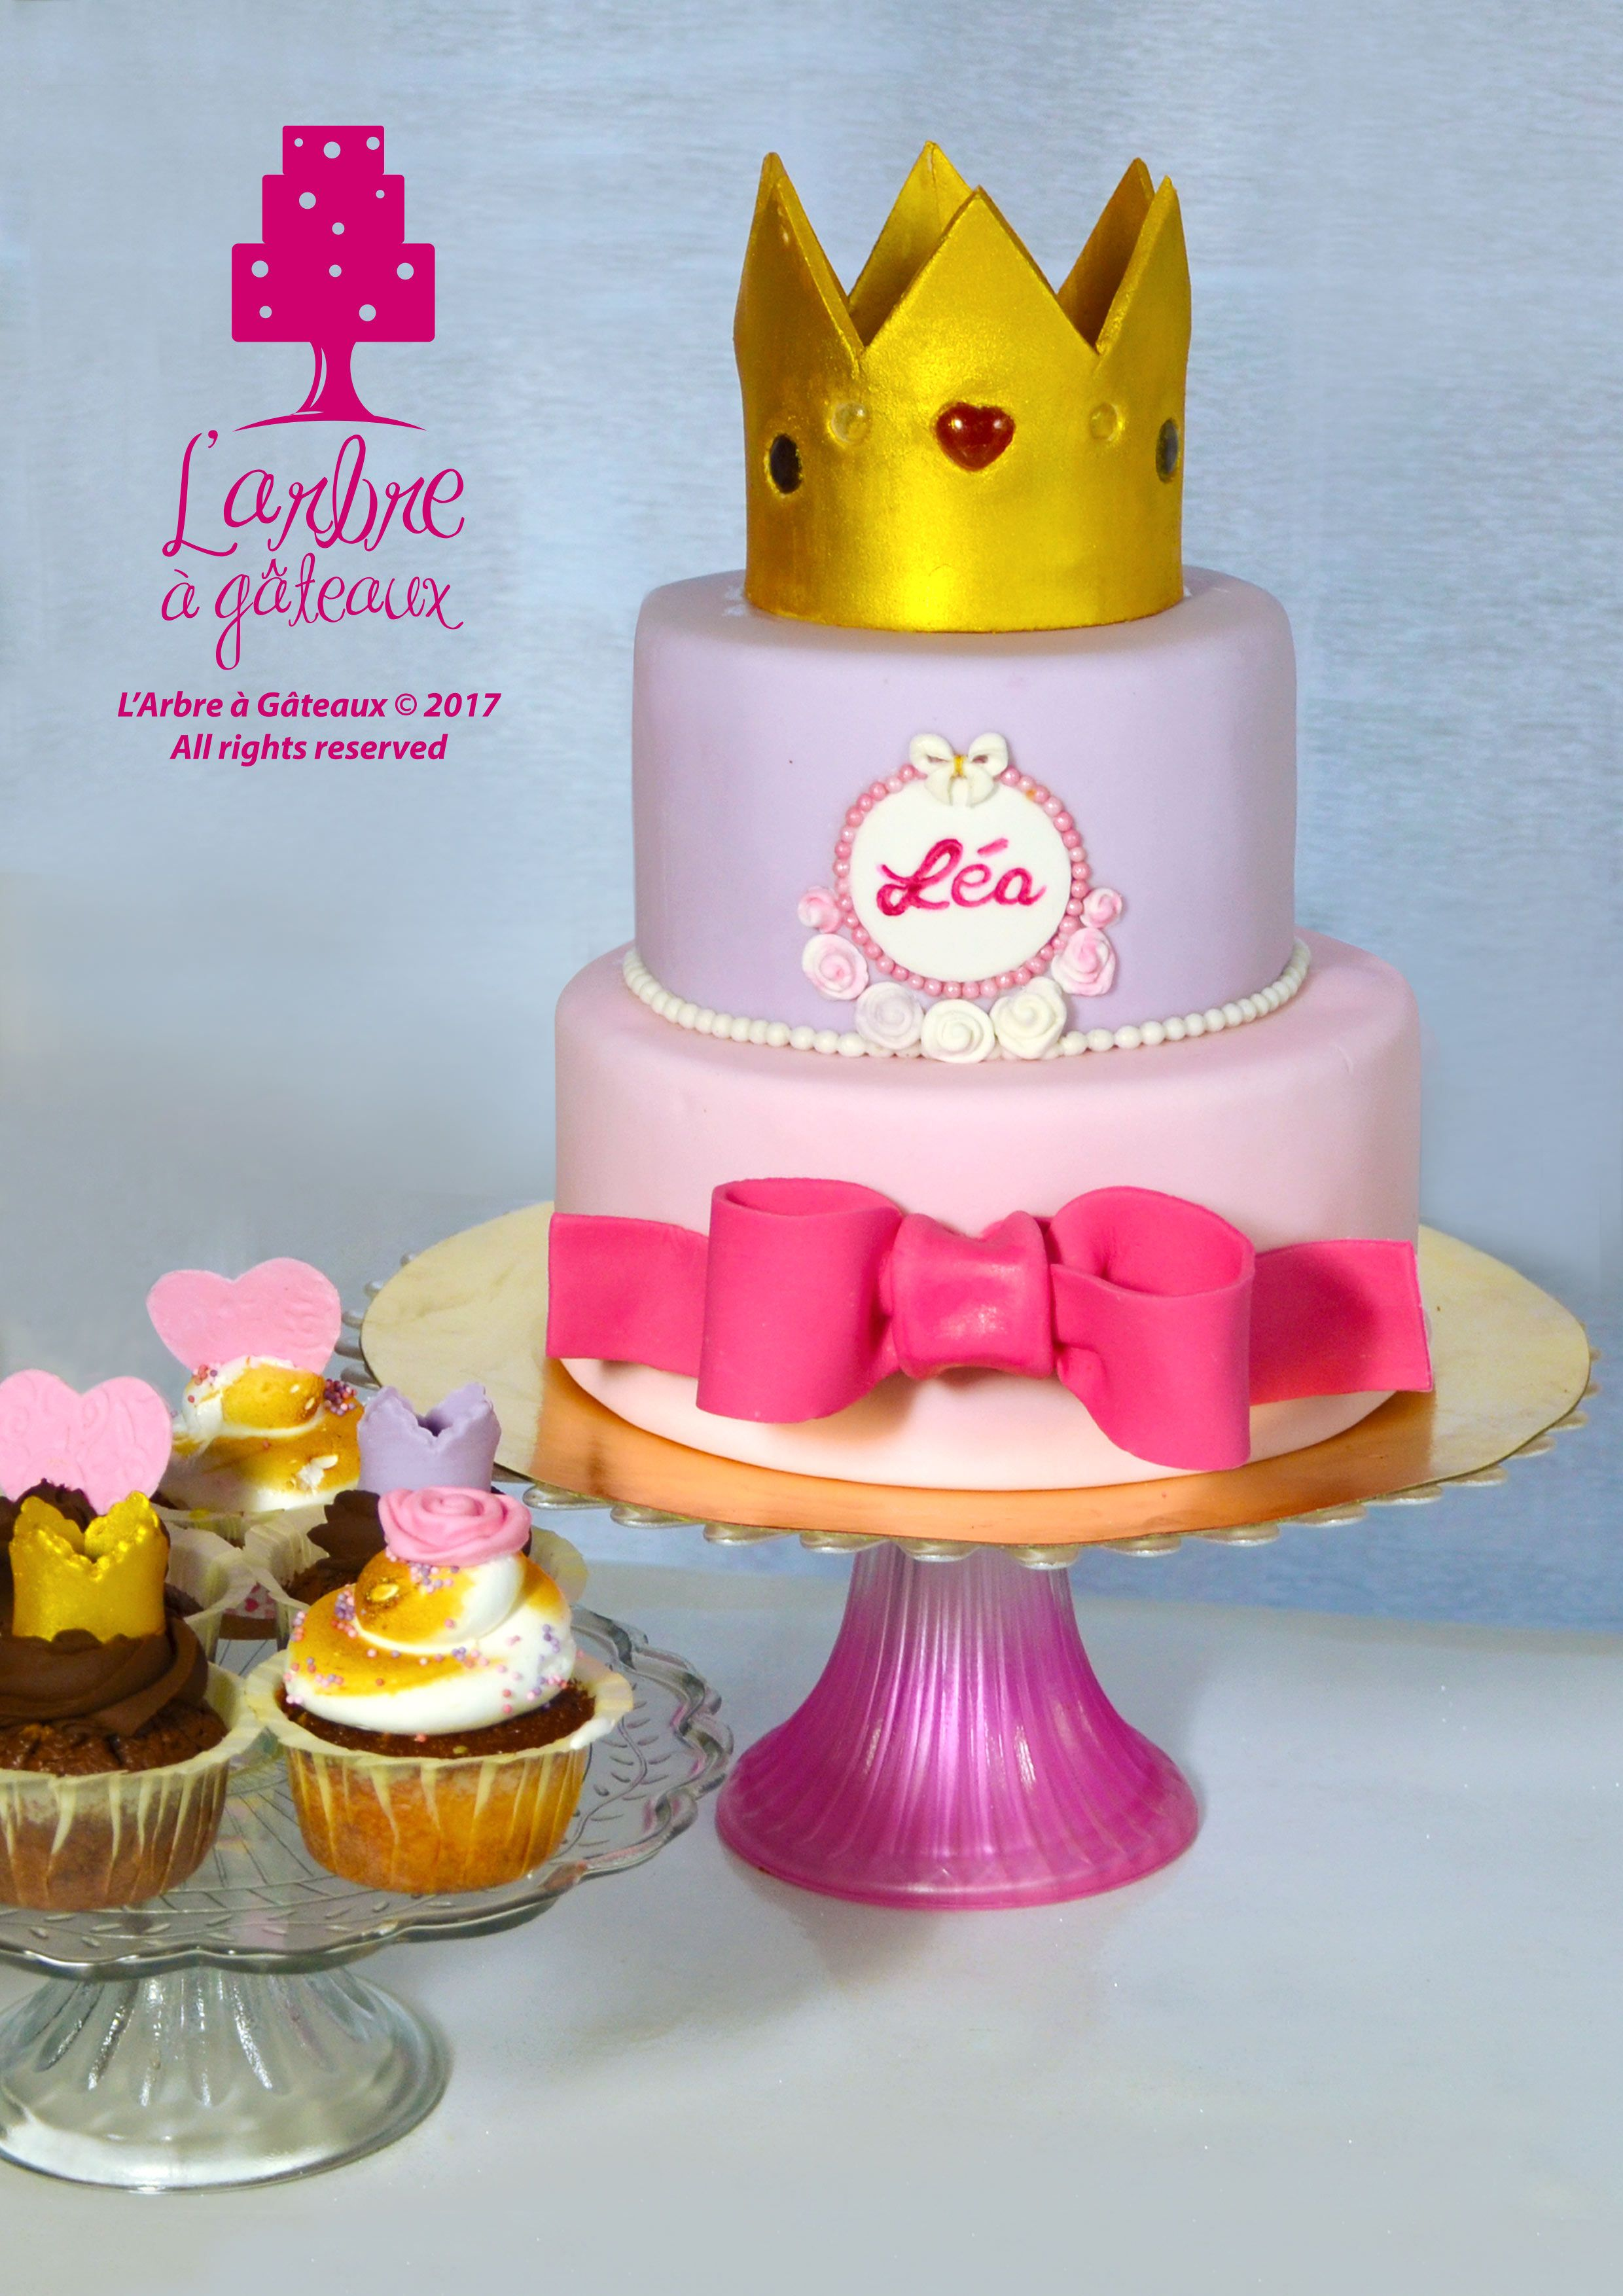 Decoration Pate A Sucre Cupcake Princess Wedding Cake And Cupcakes L 39arbre à Gâteaux